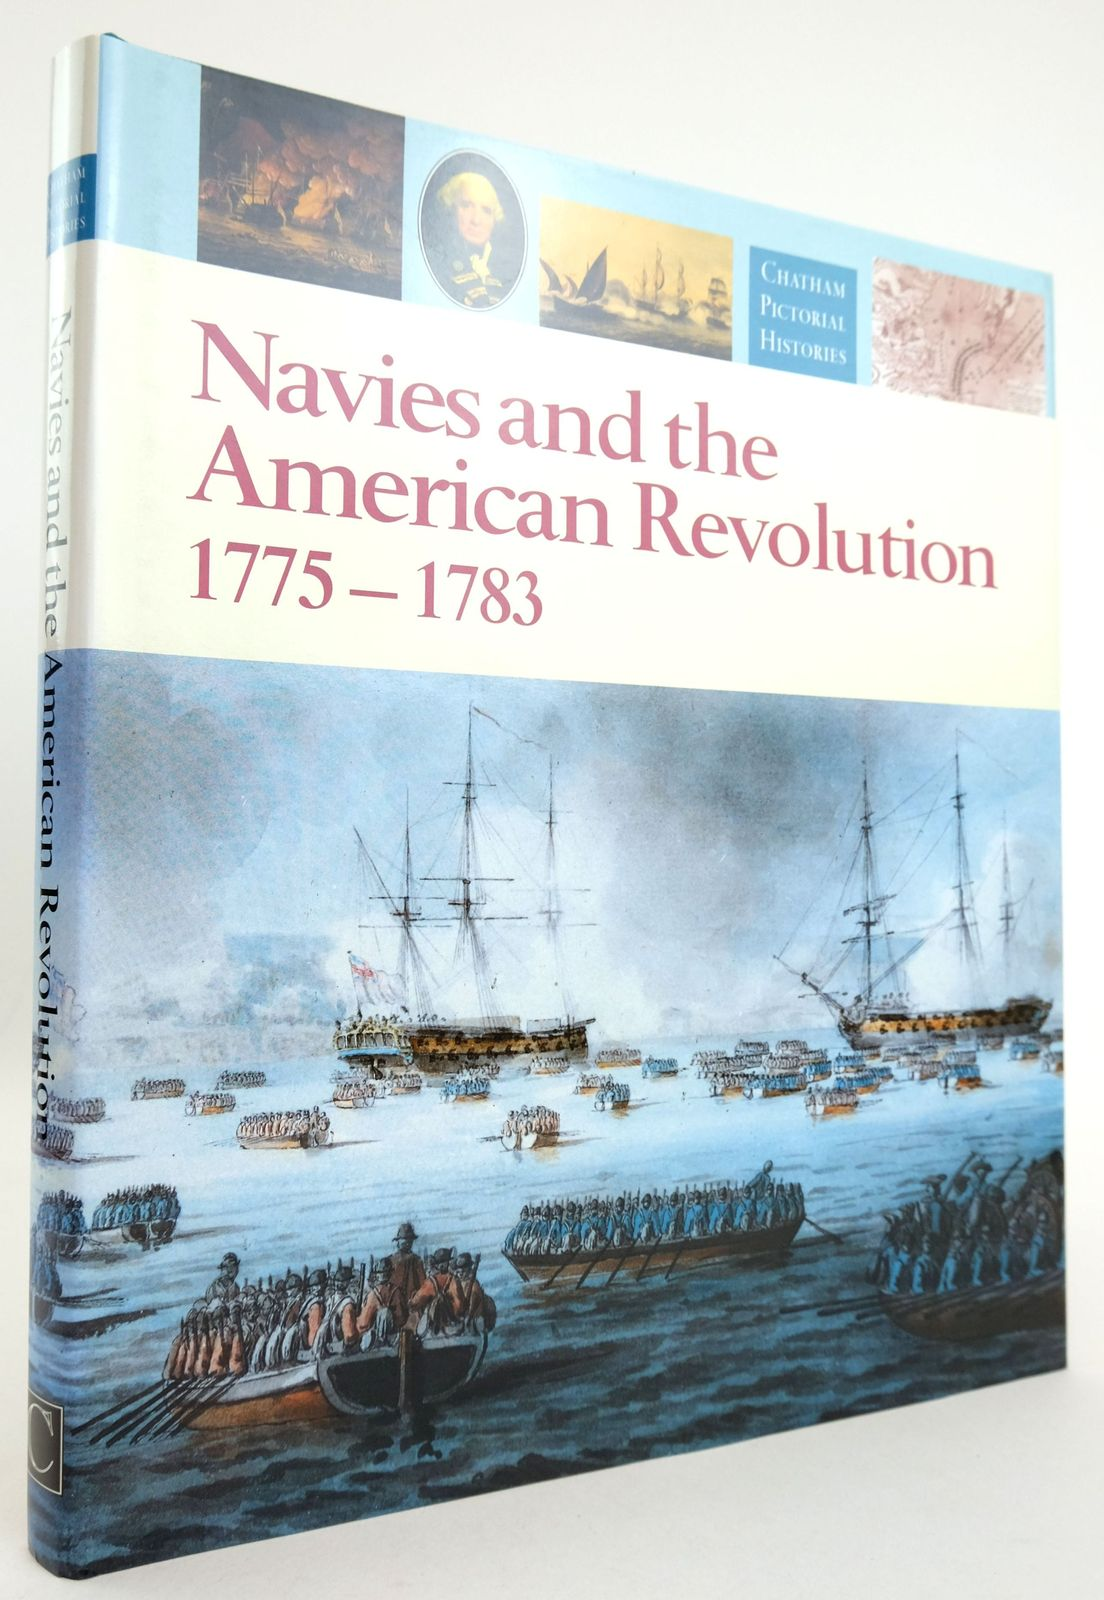 Photo of NAVIES AND THE AMERICAN REVOLUTION 1775-1783 written by Gardiner, Robert published by Chatham Publishing (STOCK CODE: 1819325)  for sale by Stella & Rose's Books